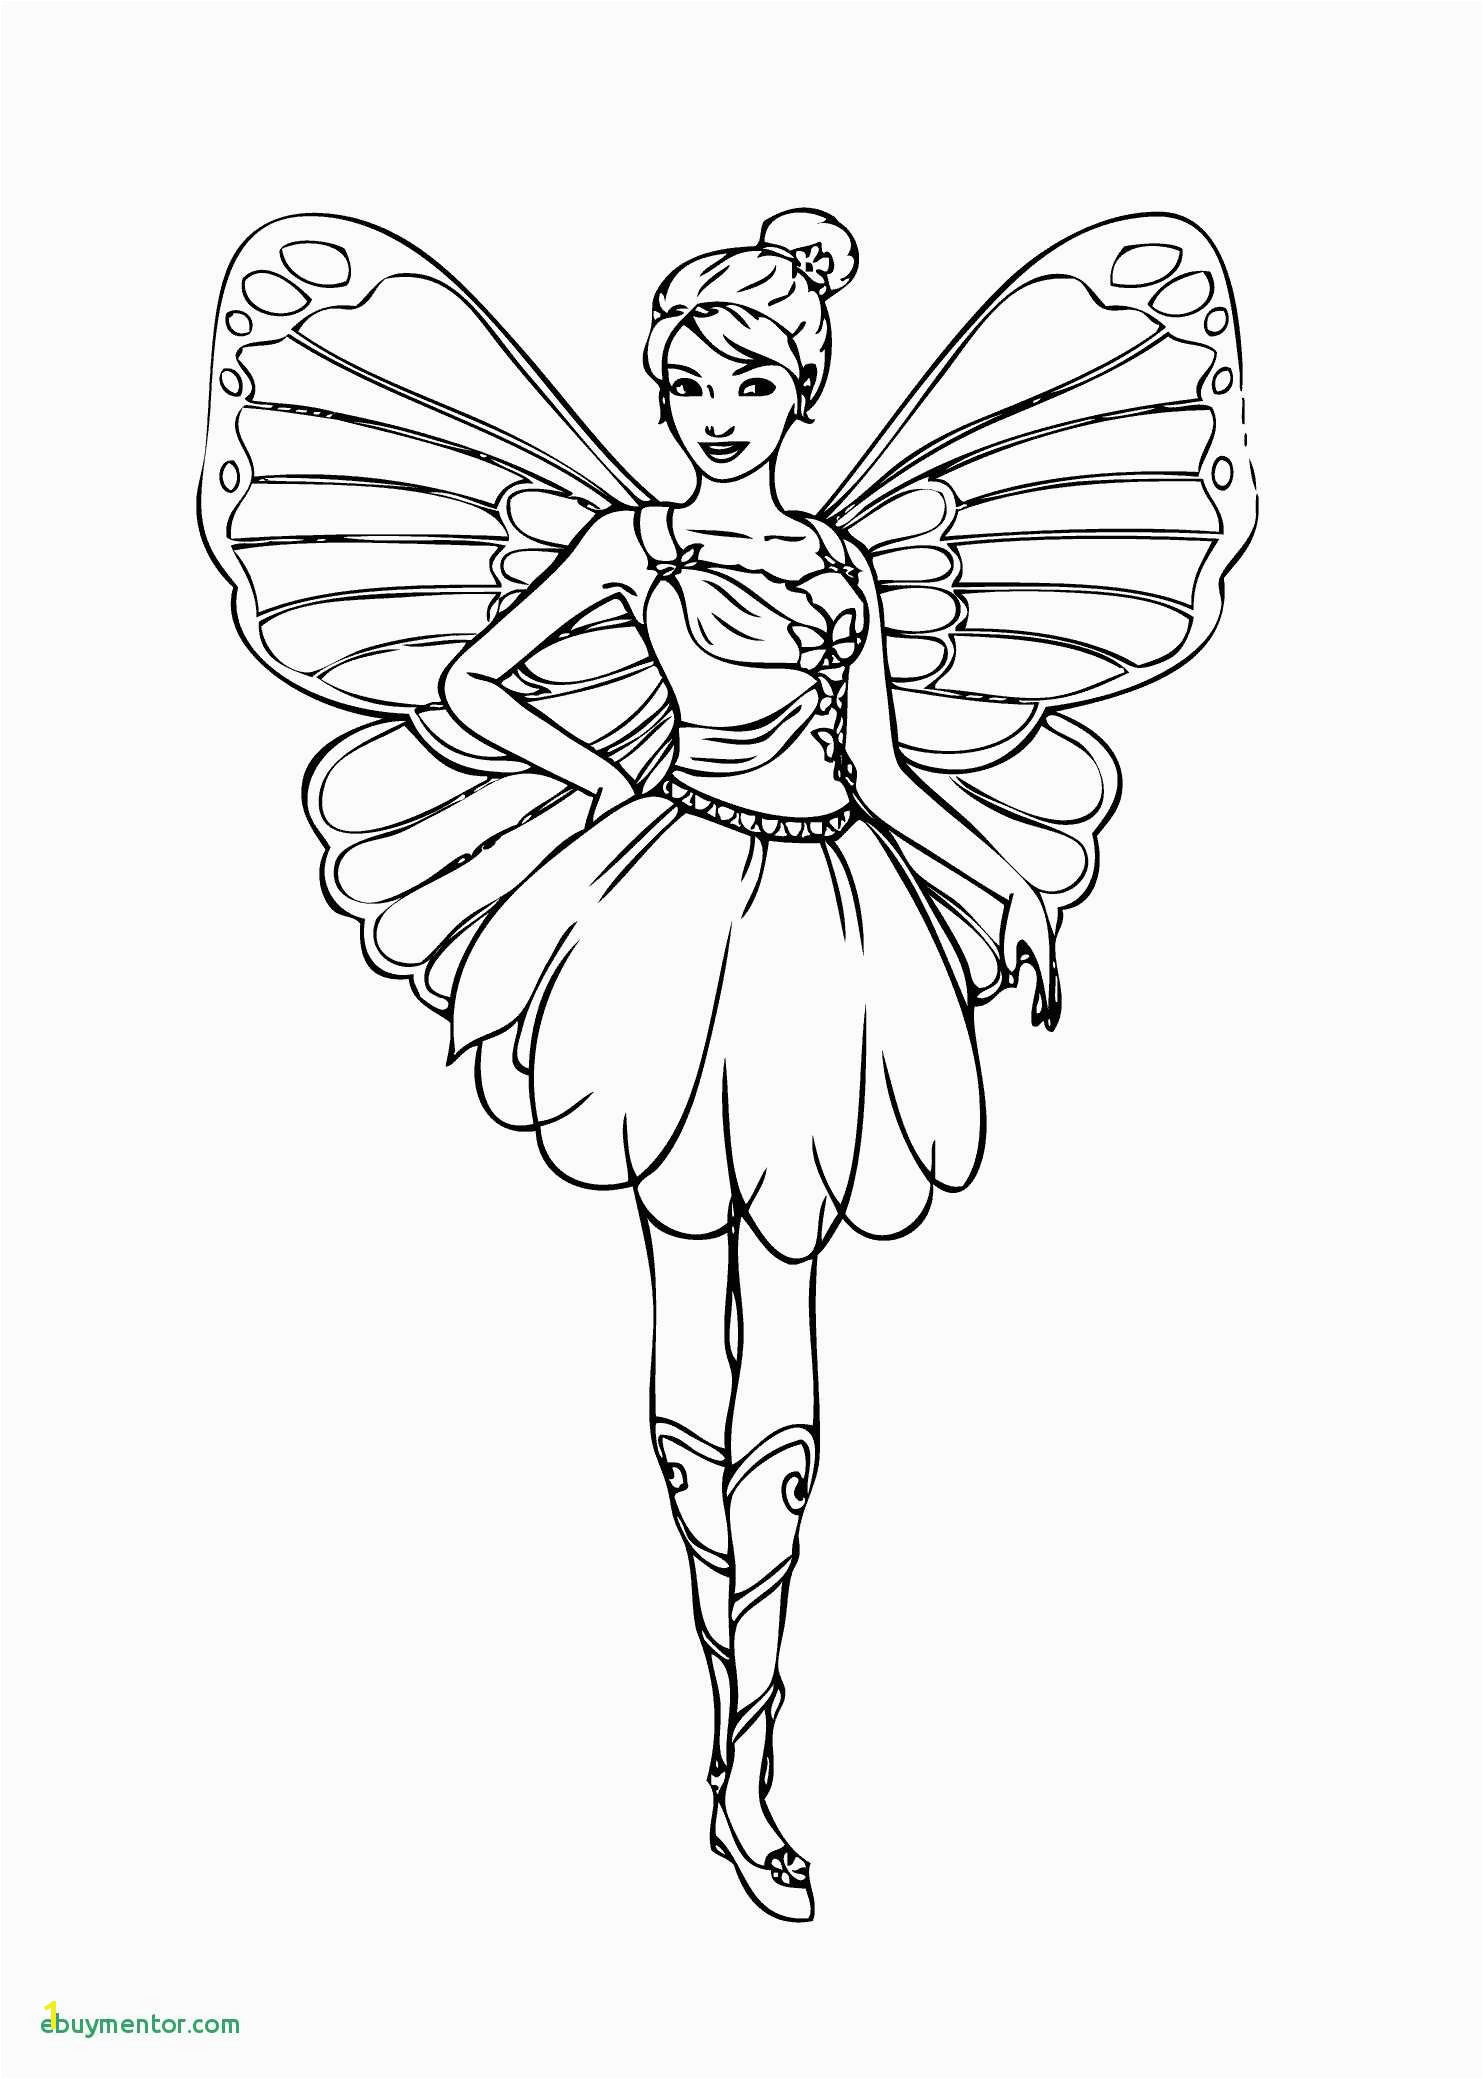 Printable Fairy Coloring Pages Coloring Pages Barbie Fairy Awesome Coloring Pages for Girls Lovely